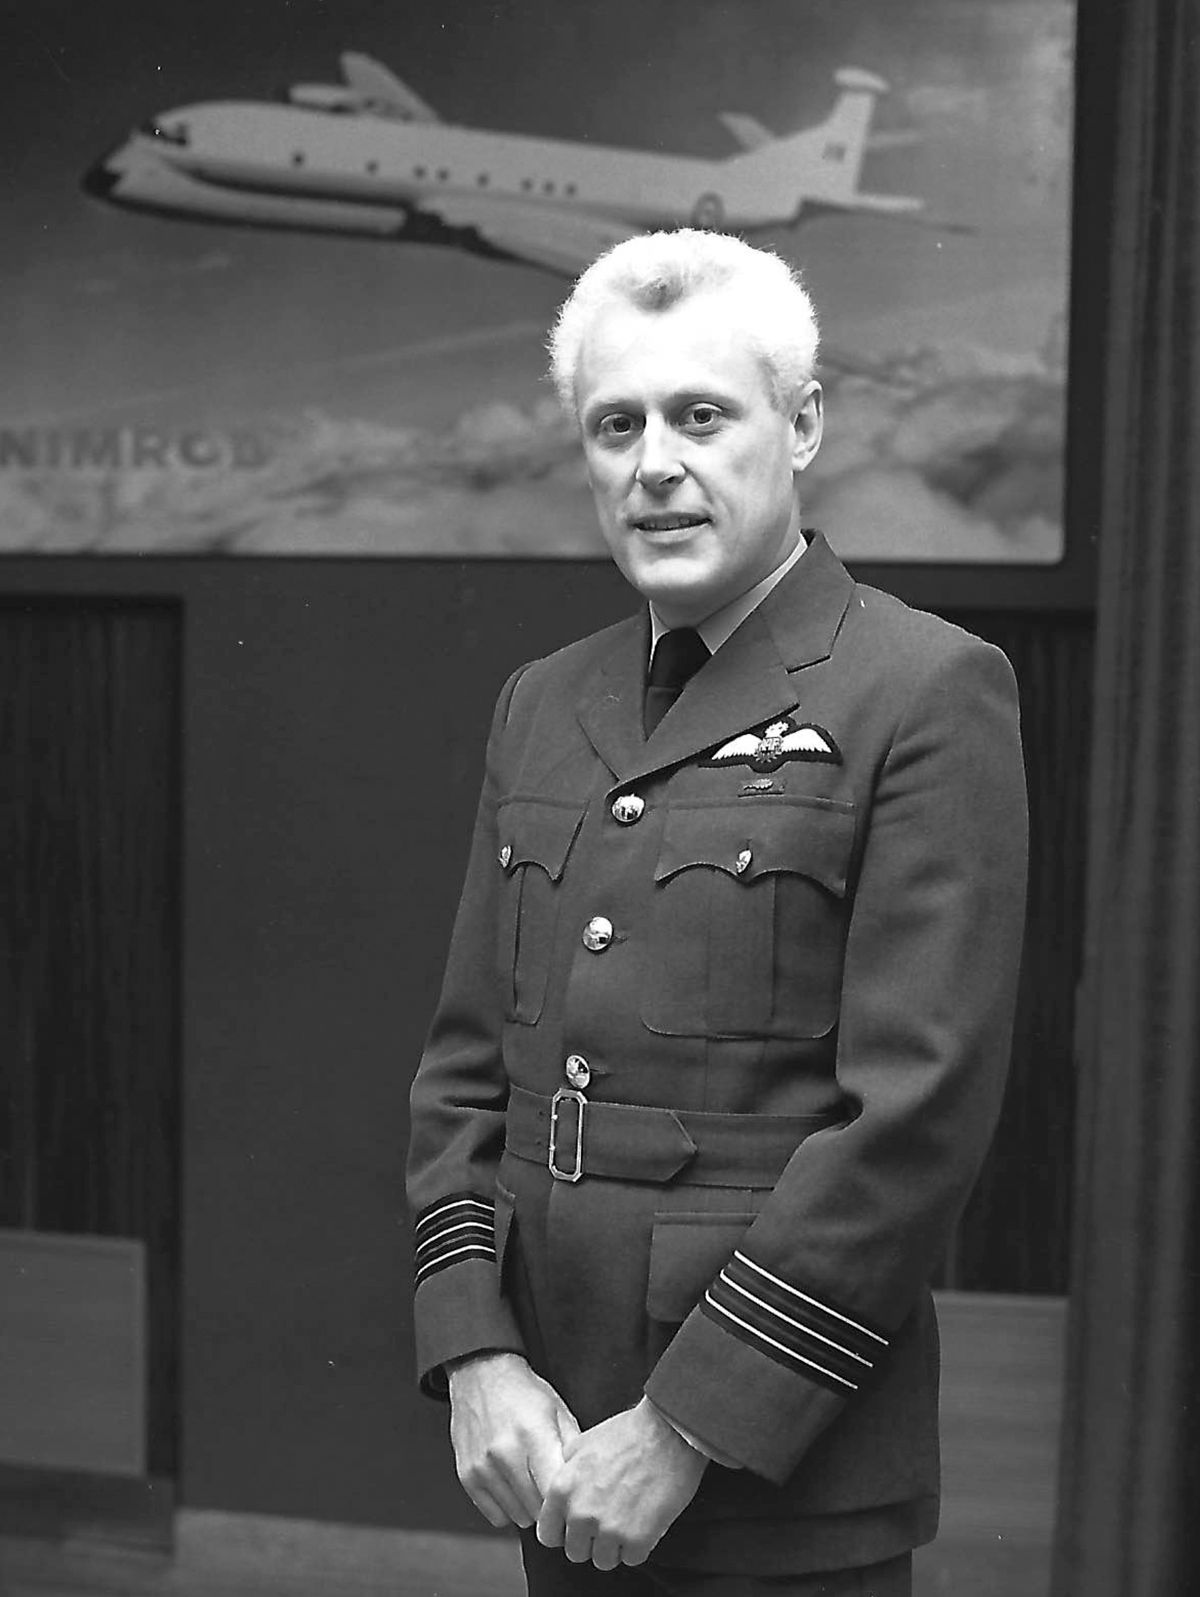 Wing Commander – later Group Captain – Mike Clegg, who served in the RAF and in Italy with Nato.